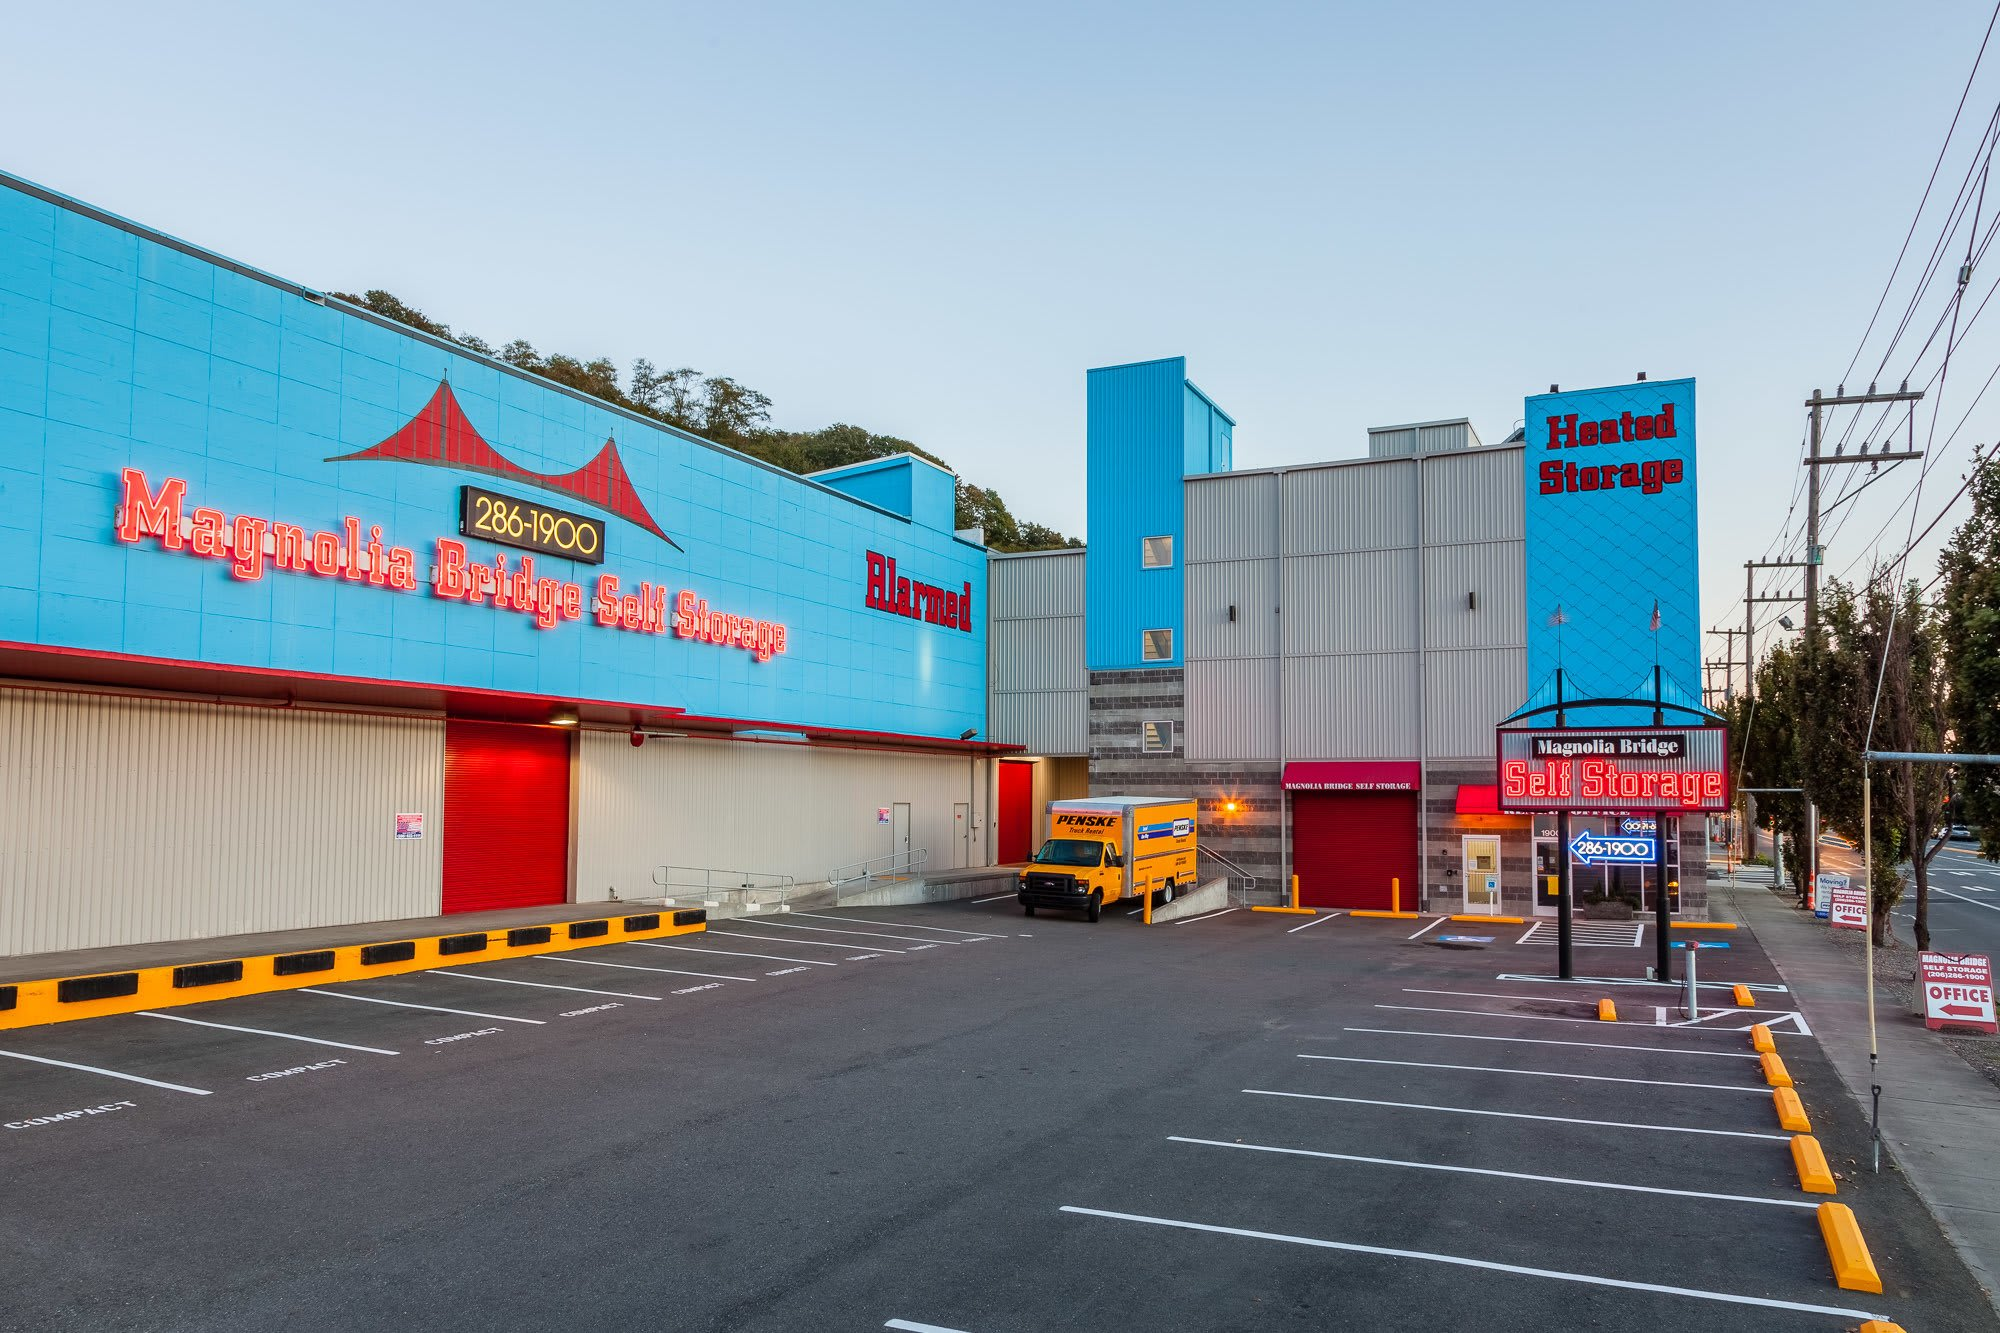 High Quality Exterior Of Self Storage Facility In Seattle, Washington